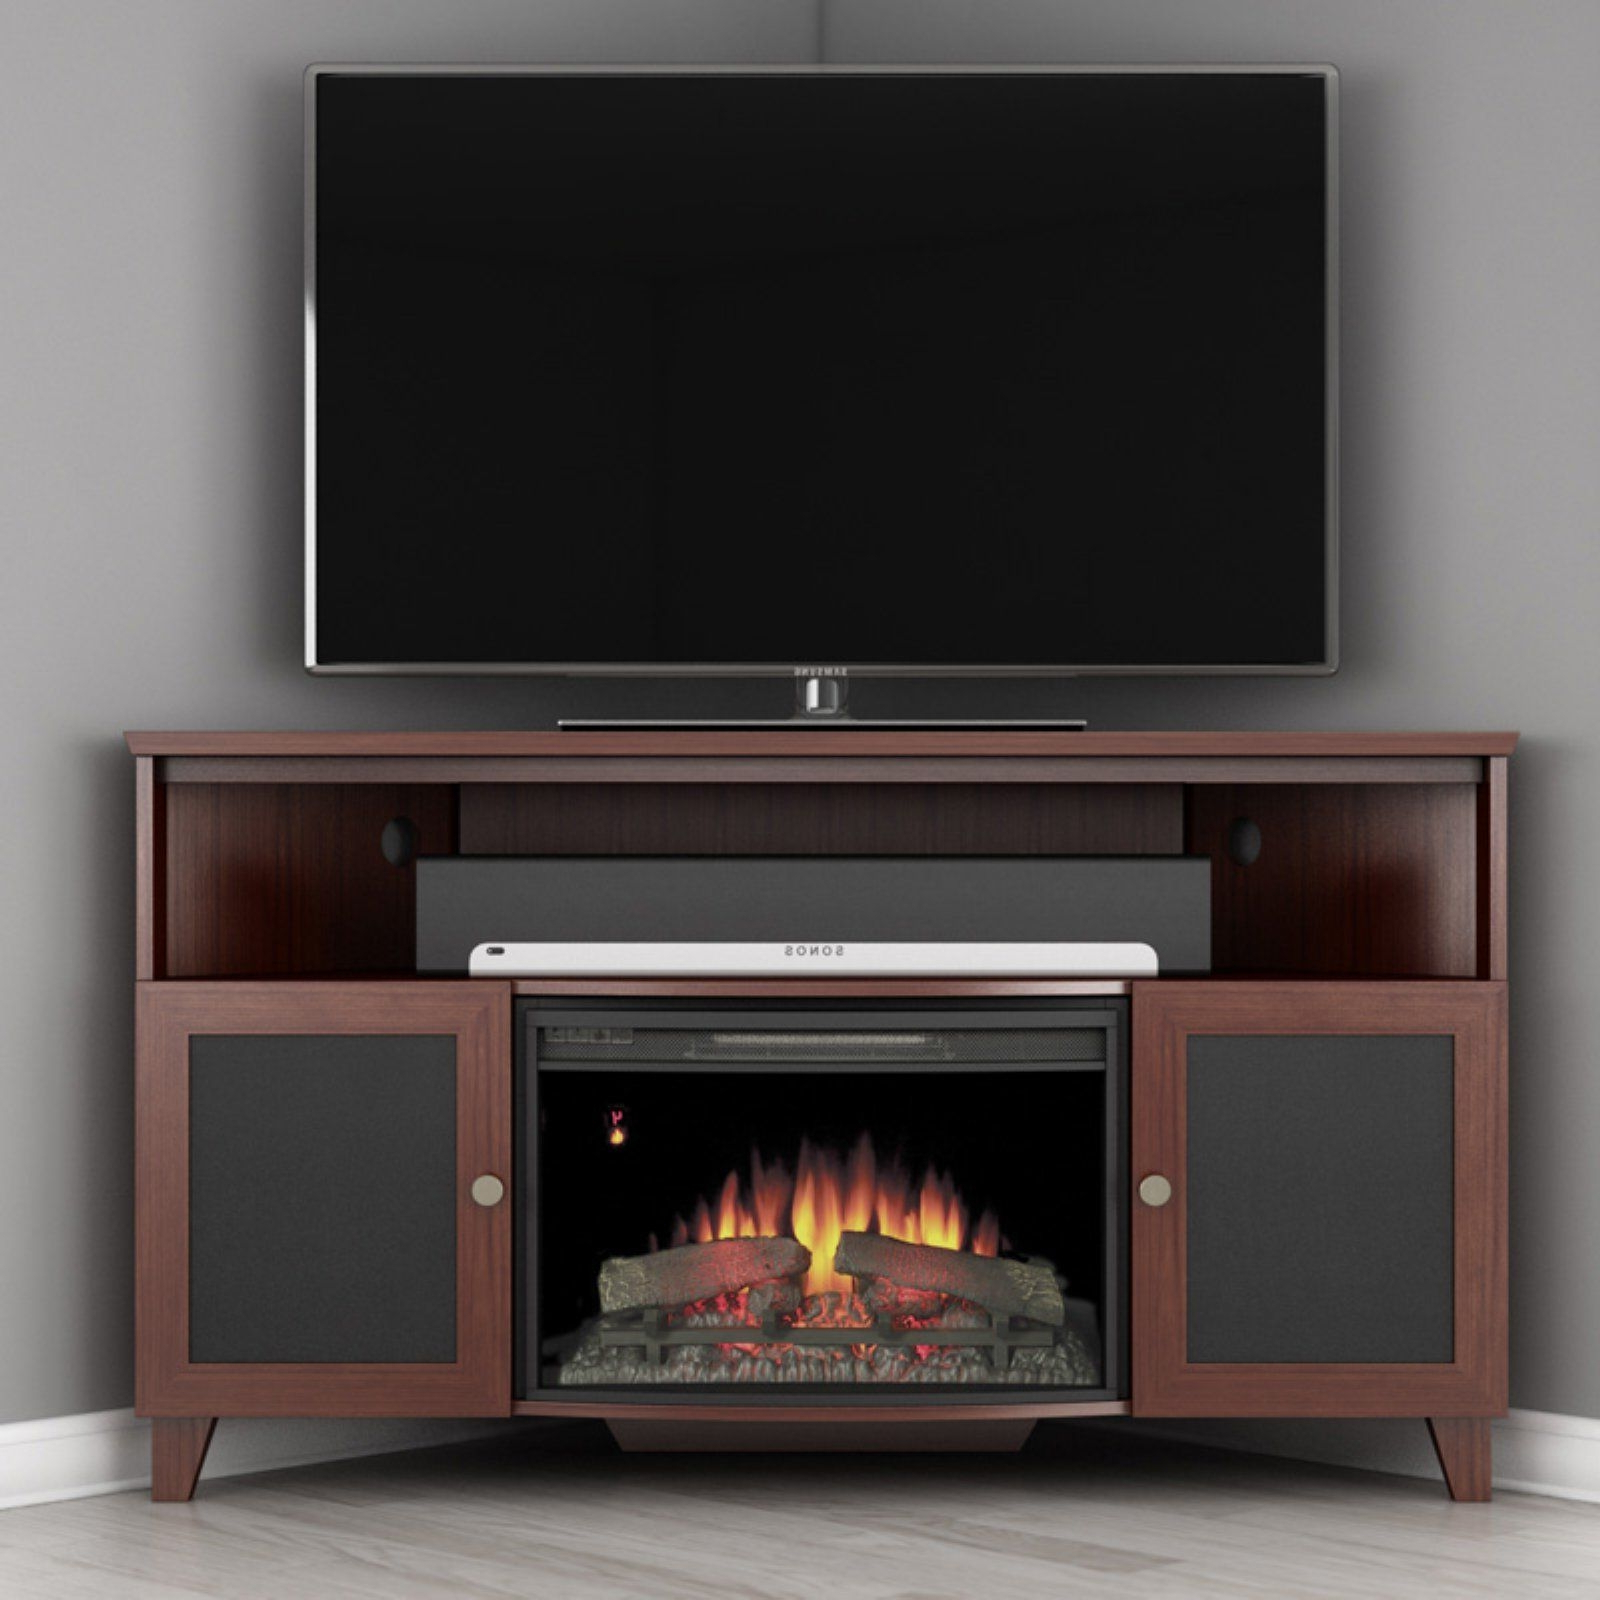 """Hetton Tv Stands For Tvs Up To 70"""" With Fireplace Included Within Current Fireplace Tv Stand 70 Inch – Ideas On Foter (View 9 of 25)"""